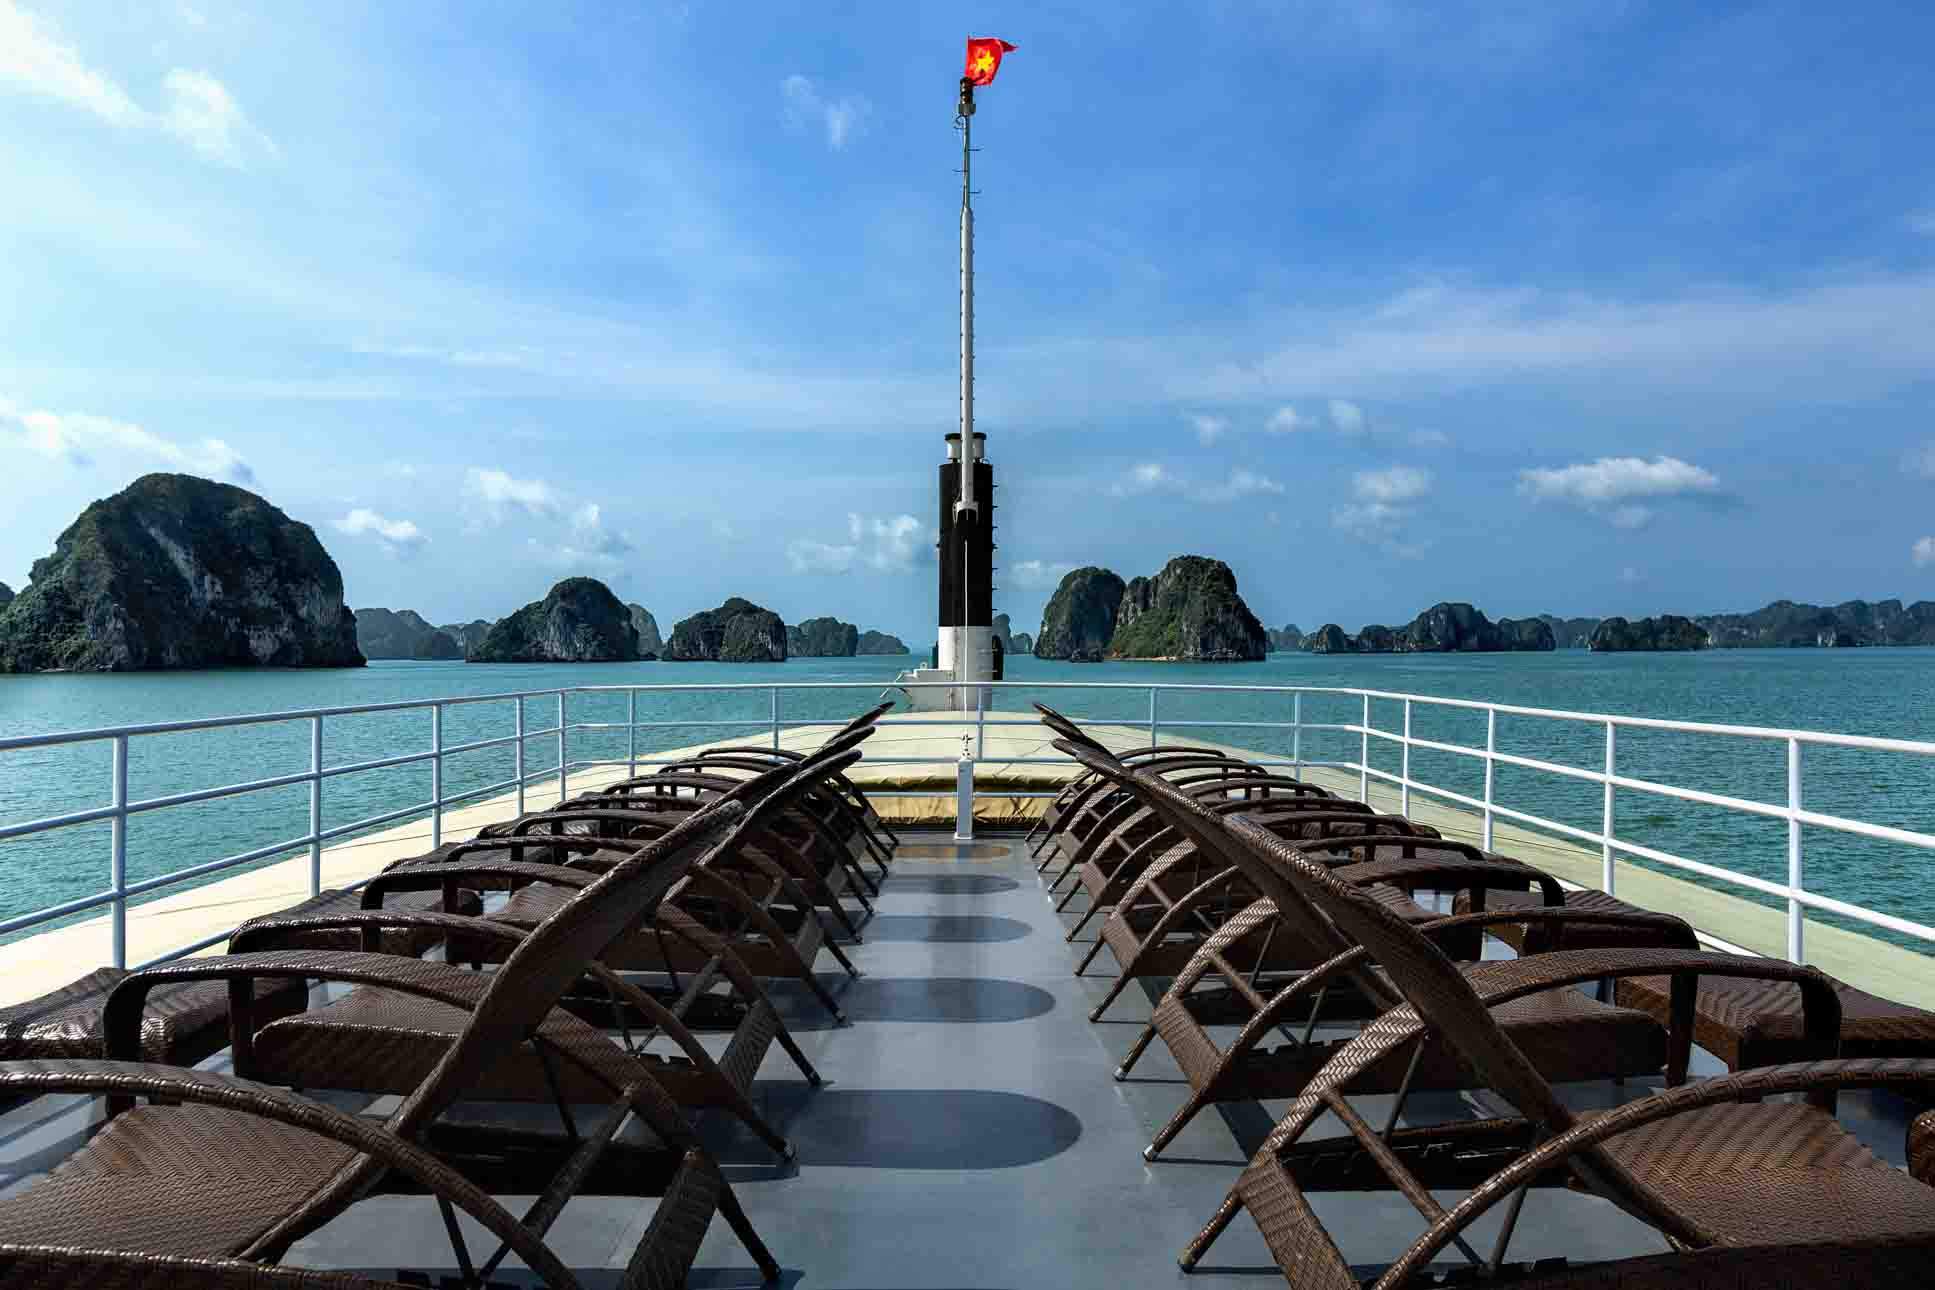 Book cruises in Halong Bay: 9 questions you should ask | The 2017 Guide